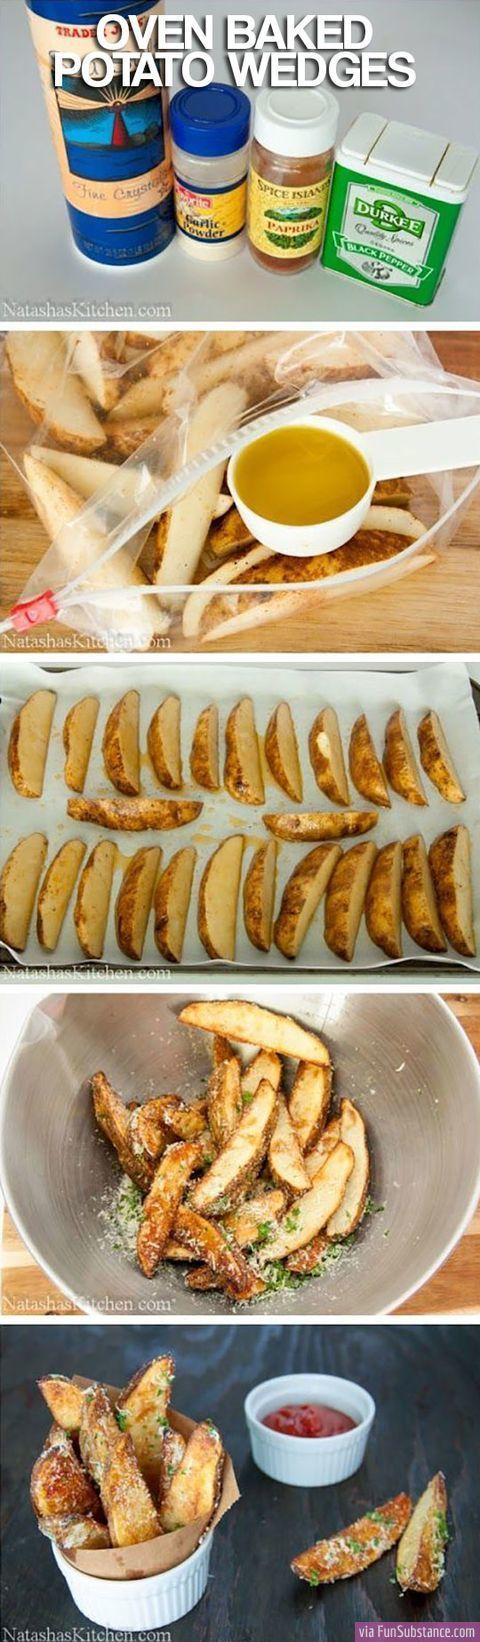 Preheat oven to 400 F. Scrub potatoes, cut them in half lengthwise, then cut each half in thirds . Place on sheet pan with all ingredients. toss all the ingredients together, making sure the potatoes are covered with oil. Spread the potatoes in a single layer with 1 cut-side down. Bake for 30 to 35 minutes, turning to the other cut side after 20 minutes. Bake until they are lightly browned, crisp outside, and tender inside. Sprinkle with salt and serve.